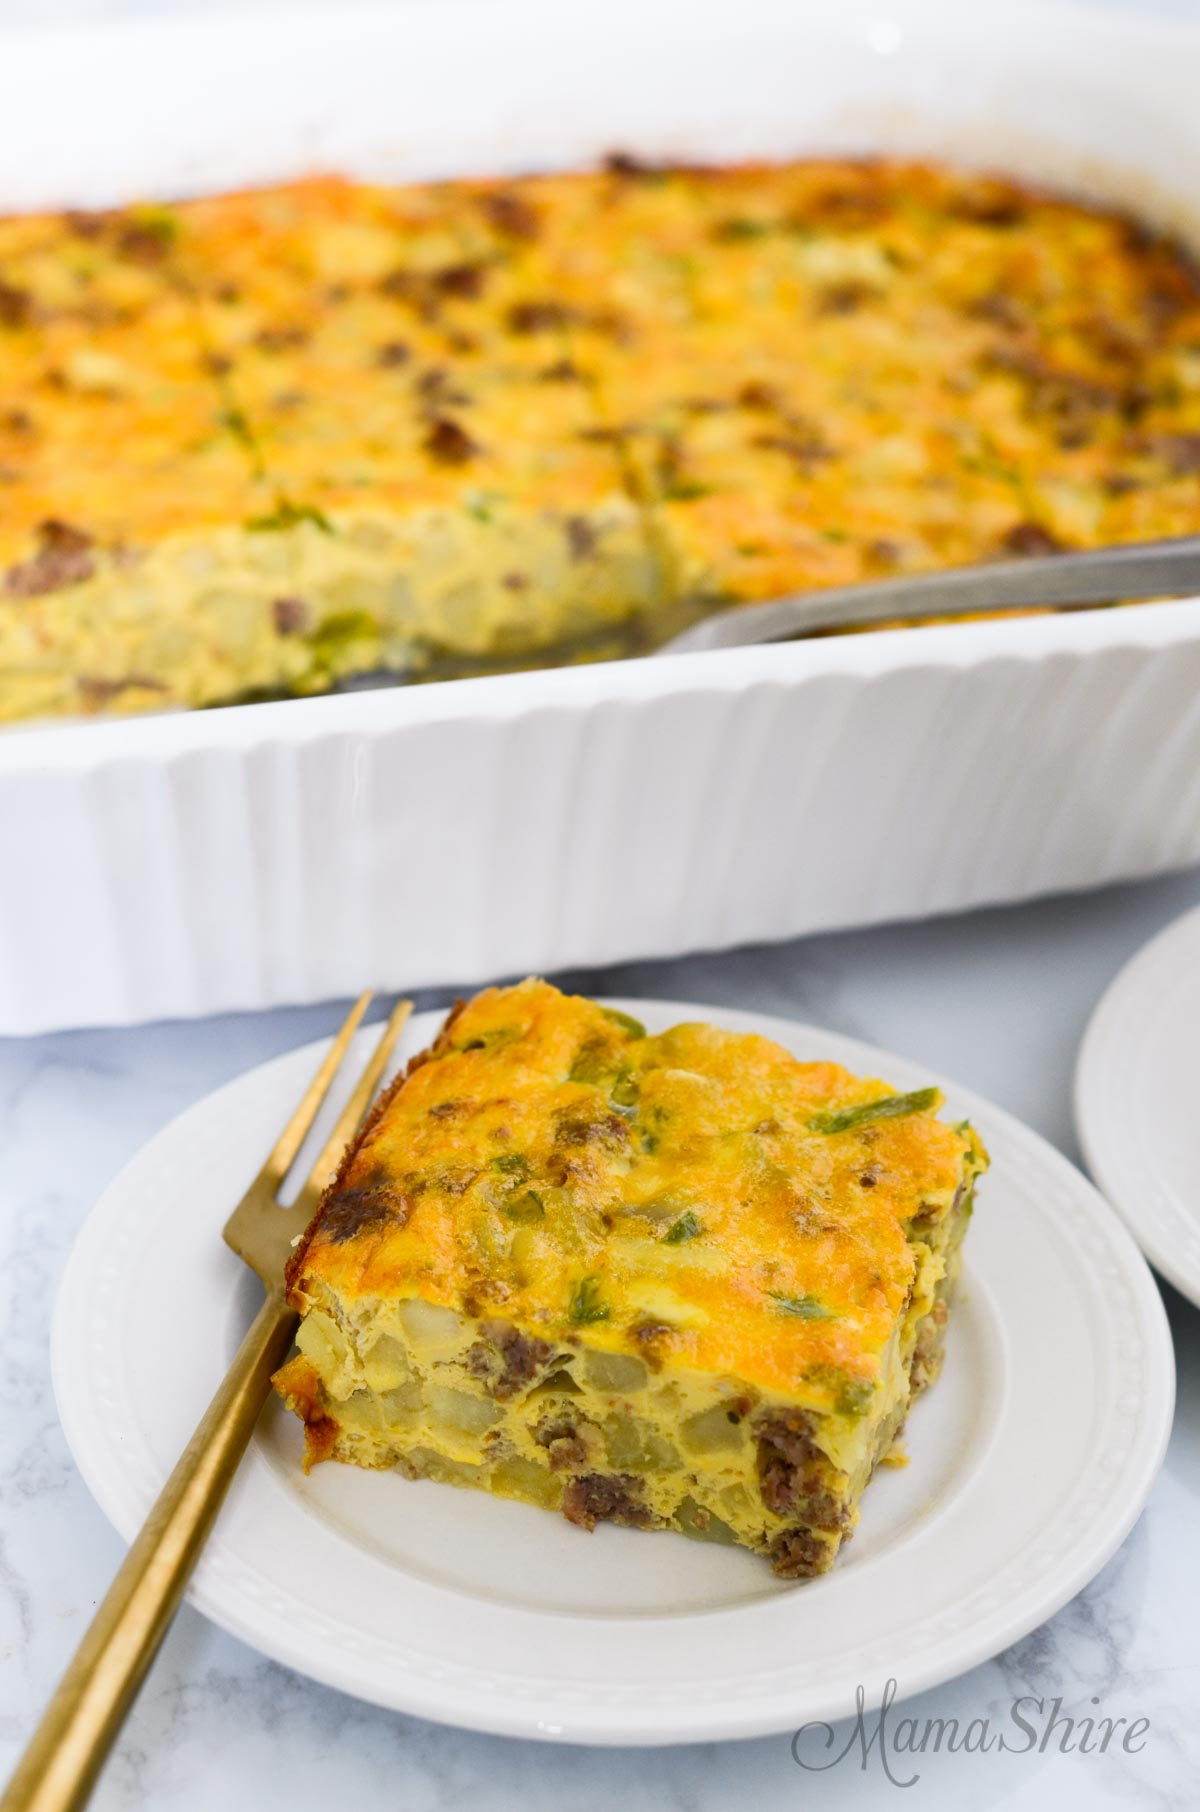 Yummy breakfast casserole that's part of my 15+ Gluten-Free Mother's Day Recipes